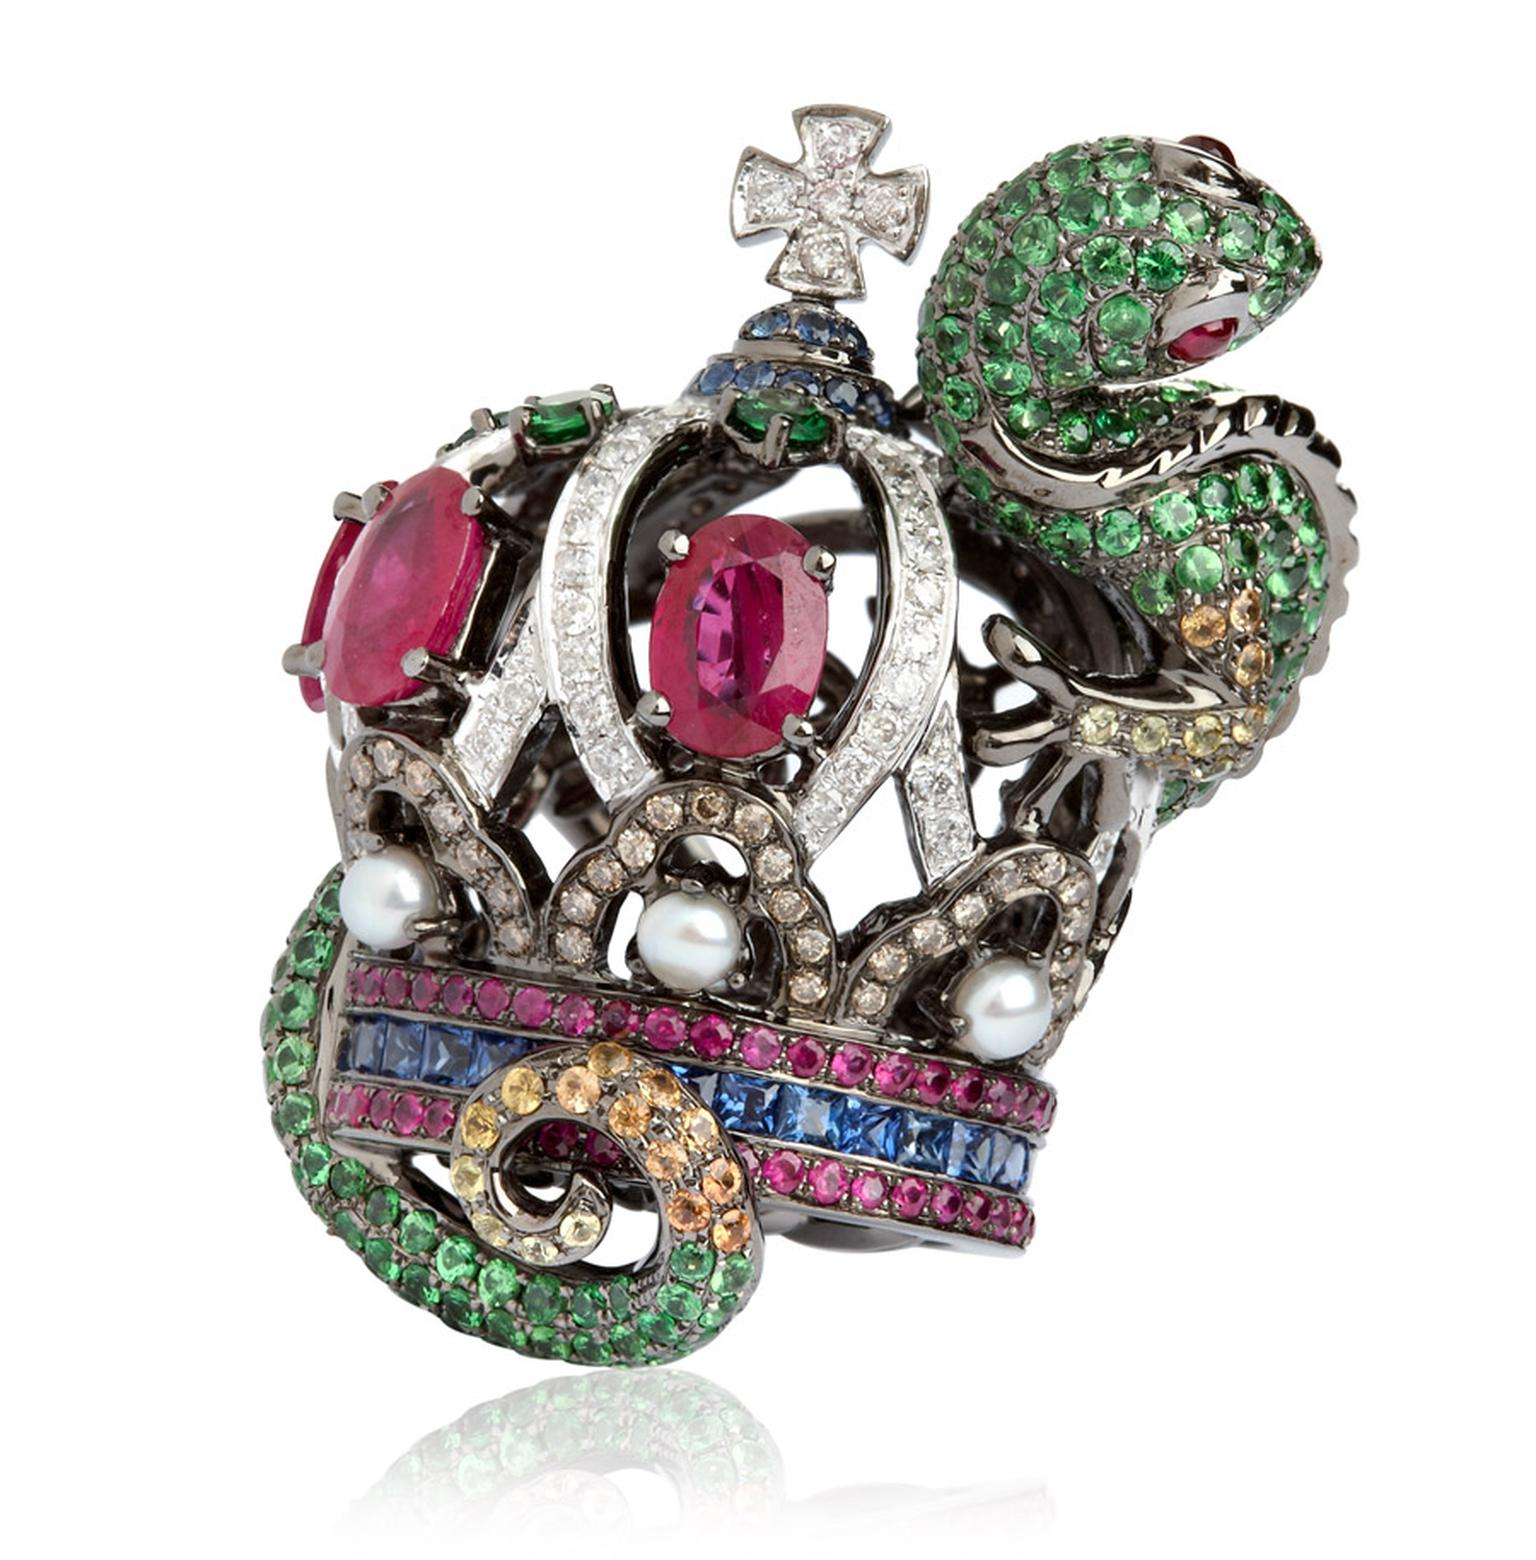 Wendy-Yue-Fantasie-Jubilee-18ct-white-gold diamond sapphire garnet-and-ruby-Lizard-ring-by-Wendy-Yue-for-Annoushka_02a.jpg